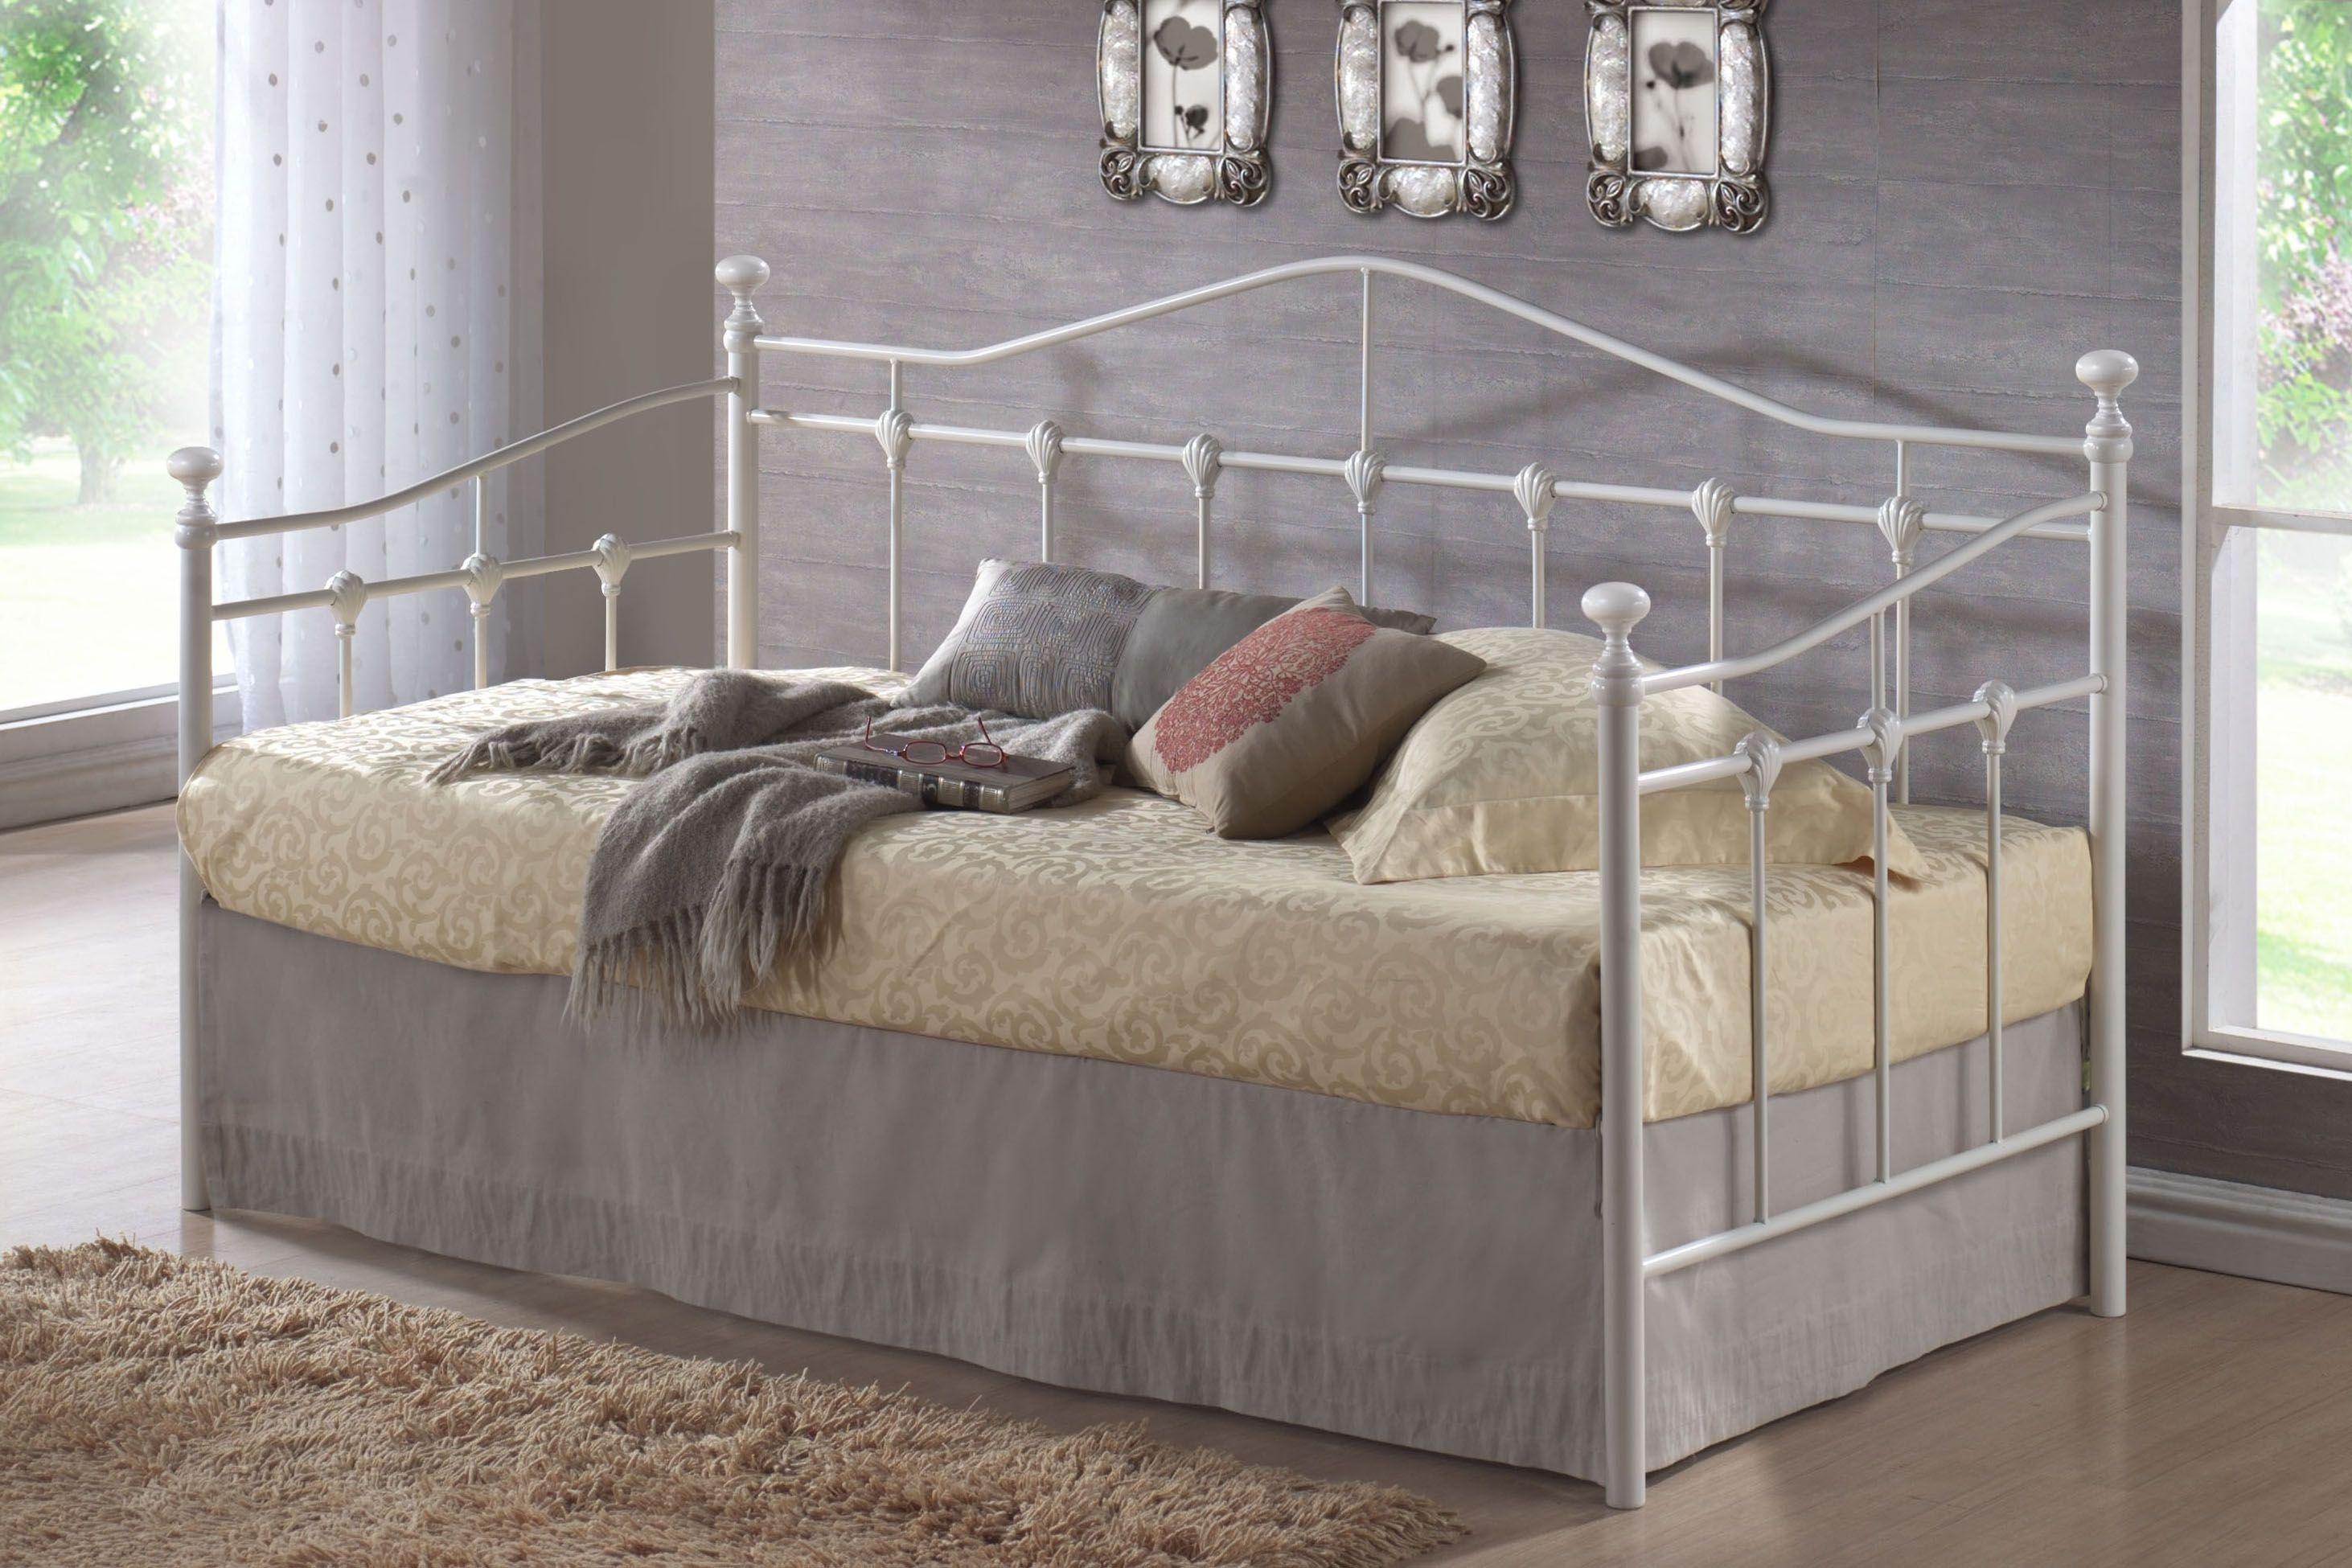 List Of 20 Different Types Of Beds By Homearena Day Bed Frame